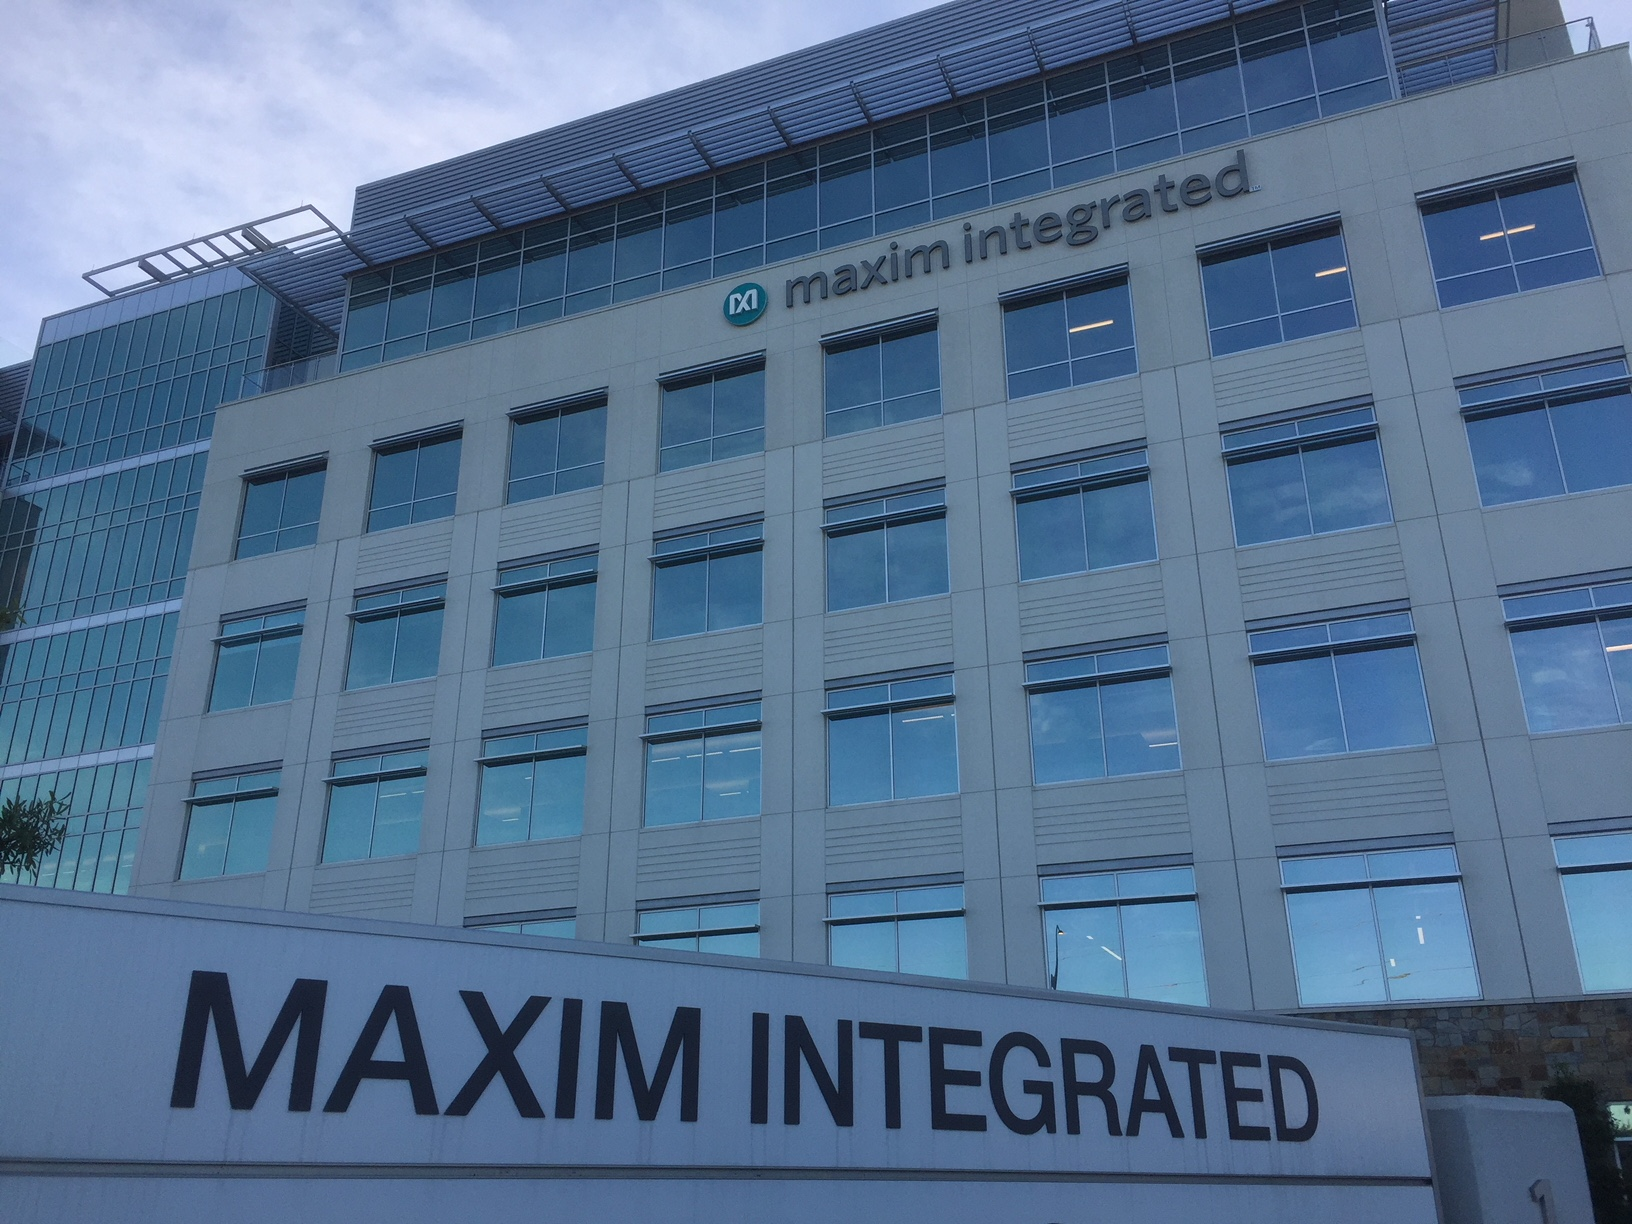 This is Maxim's new building in Addison, only a mile or so away from its old campus in Farmers Branch. In both cases, the company negotiated government giveaways. .